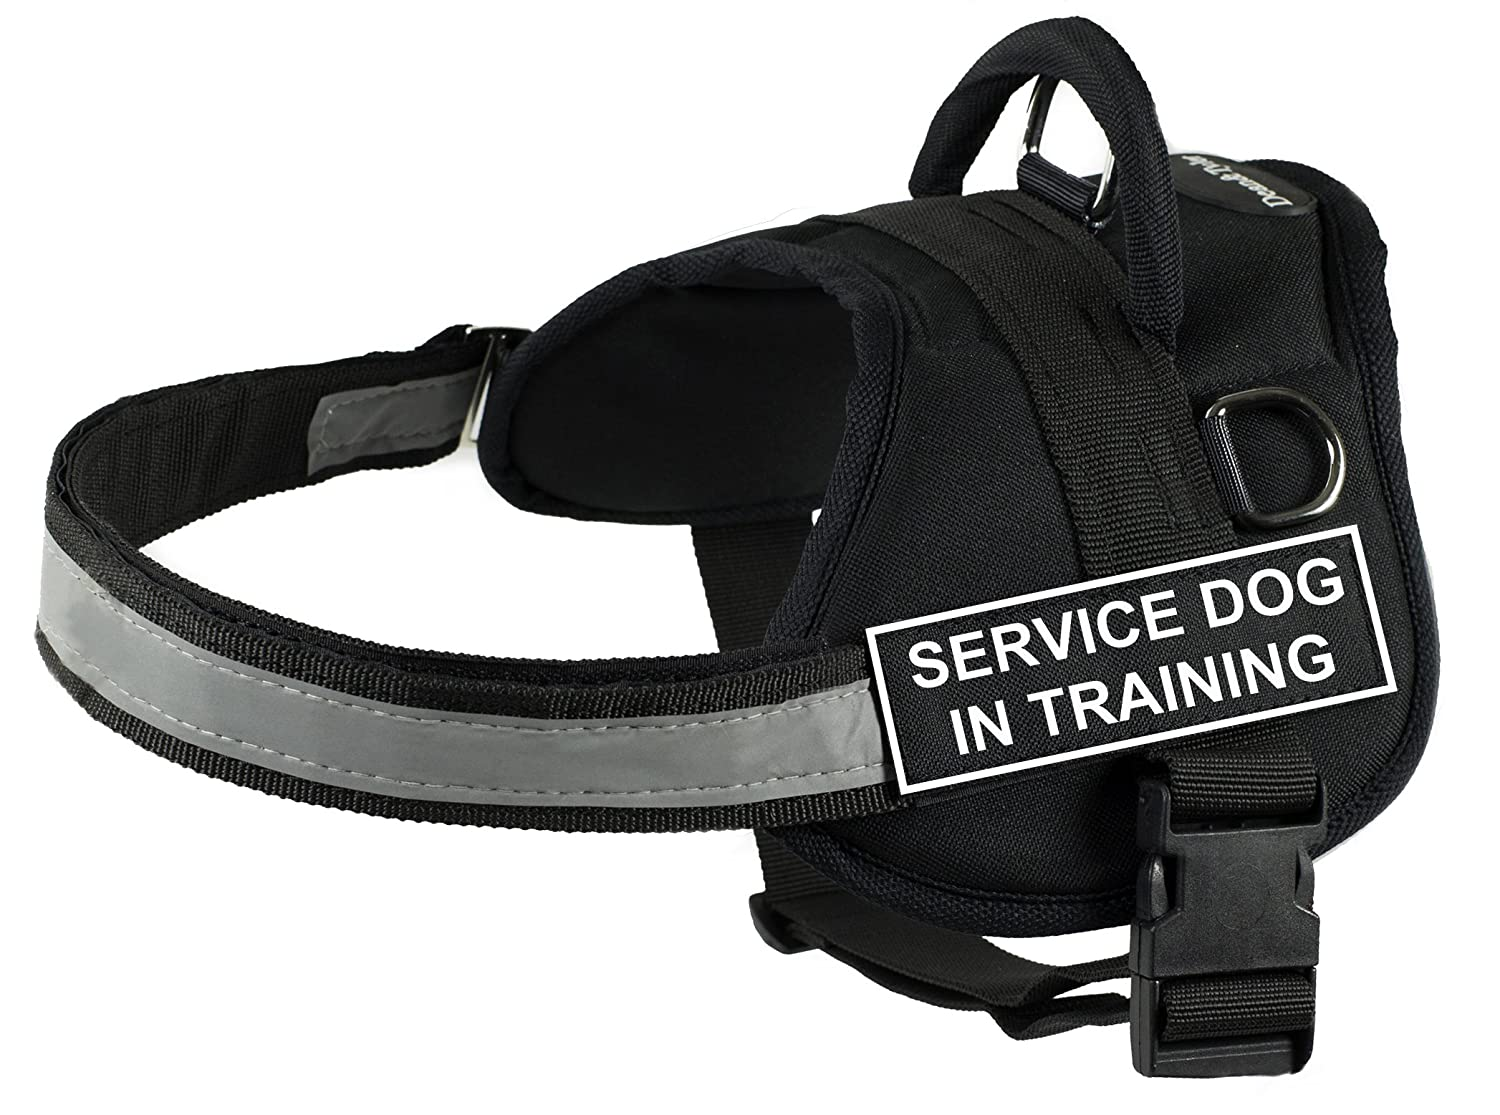 Dean & Tyler Works Harness, Service Dog In Training, XX-Small-Fits Girth, 46cm to 53cm, Black White